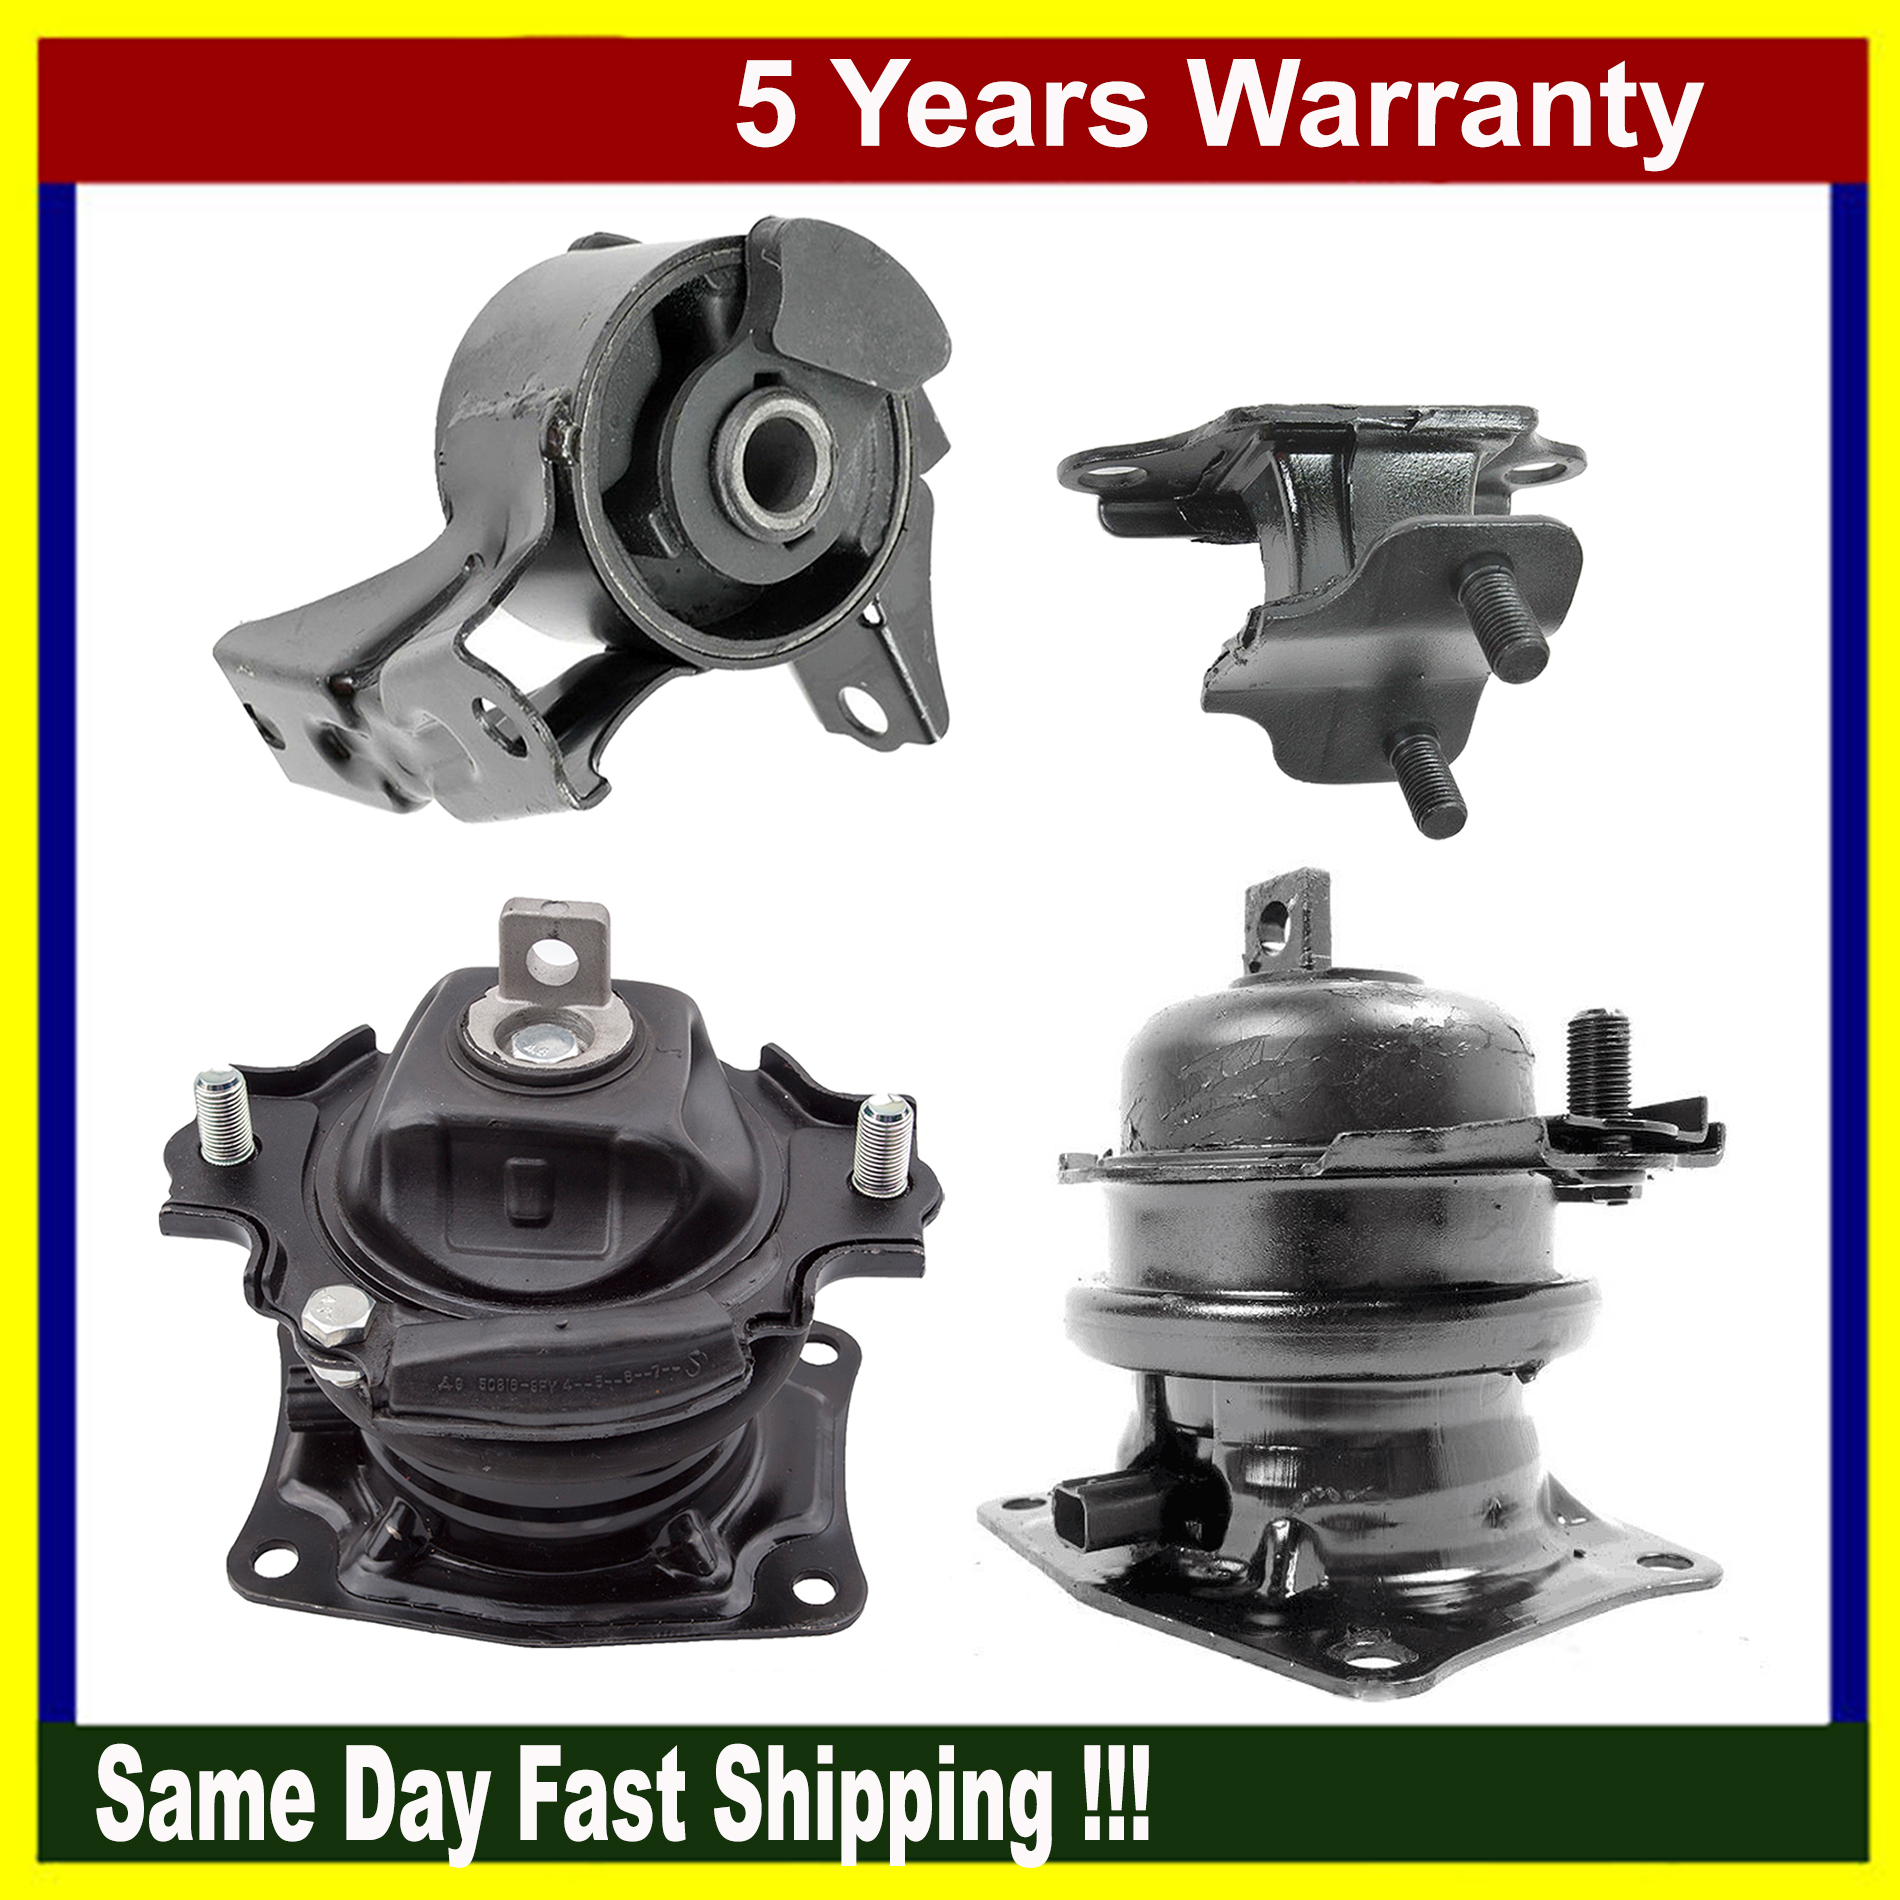 Fits For 05-07 Honda Odyssey IVTEC Front Rear Engine Motor Mount Kit Pair with Sensor 3.5